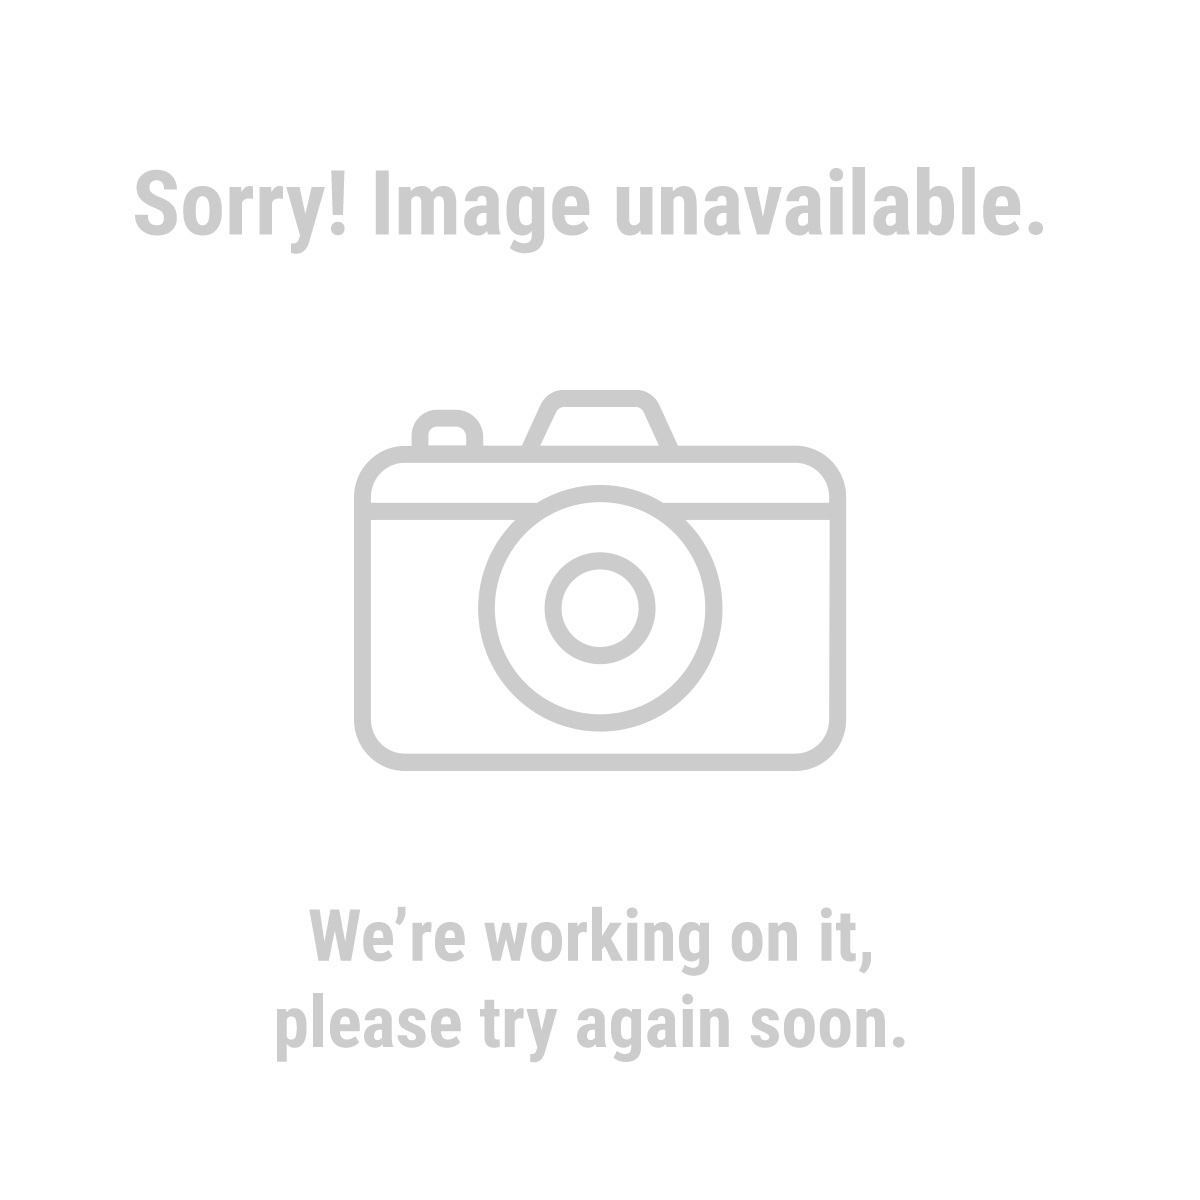 U.S. General Pro 61427 704 lb. Capacity Five Drawer Industrial Tool Cart